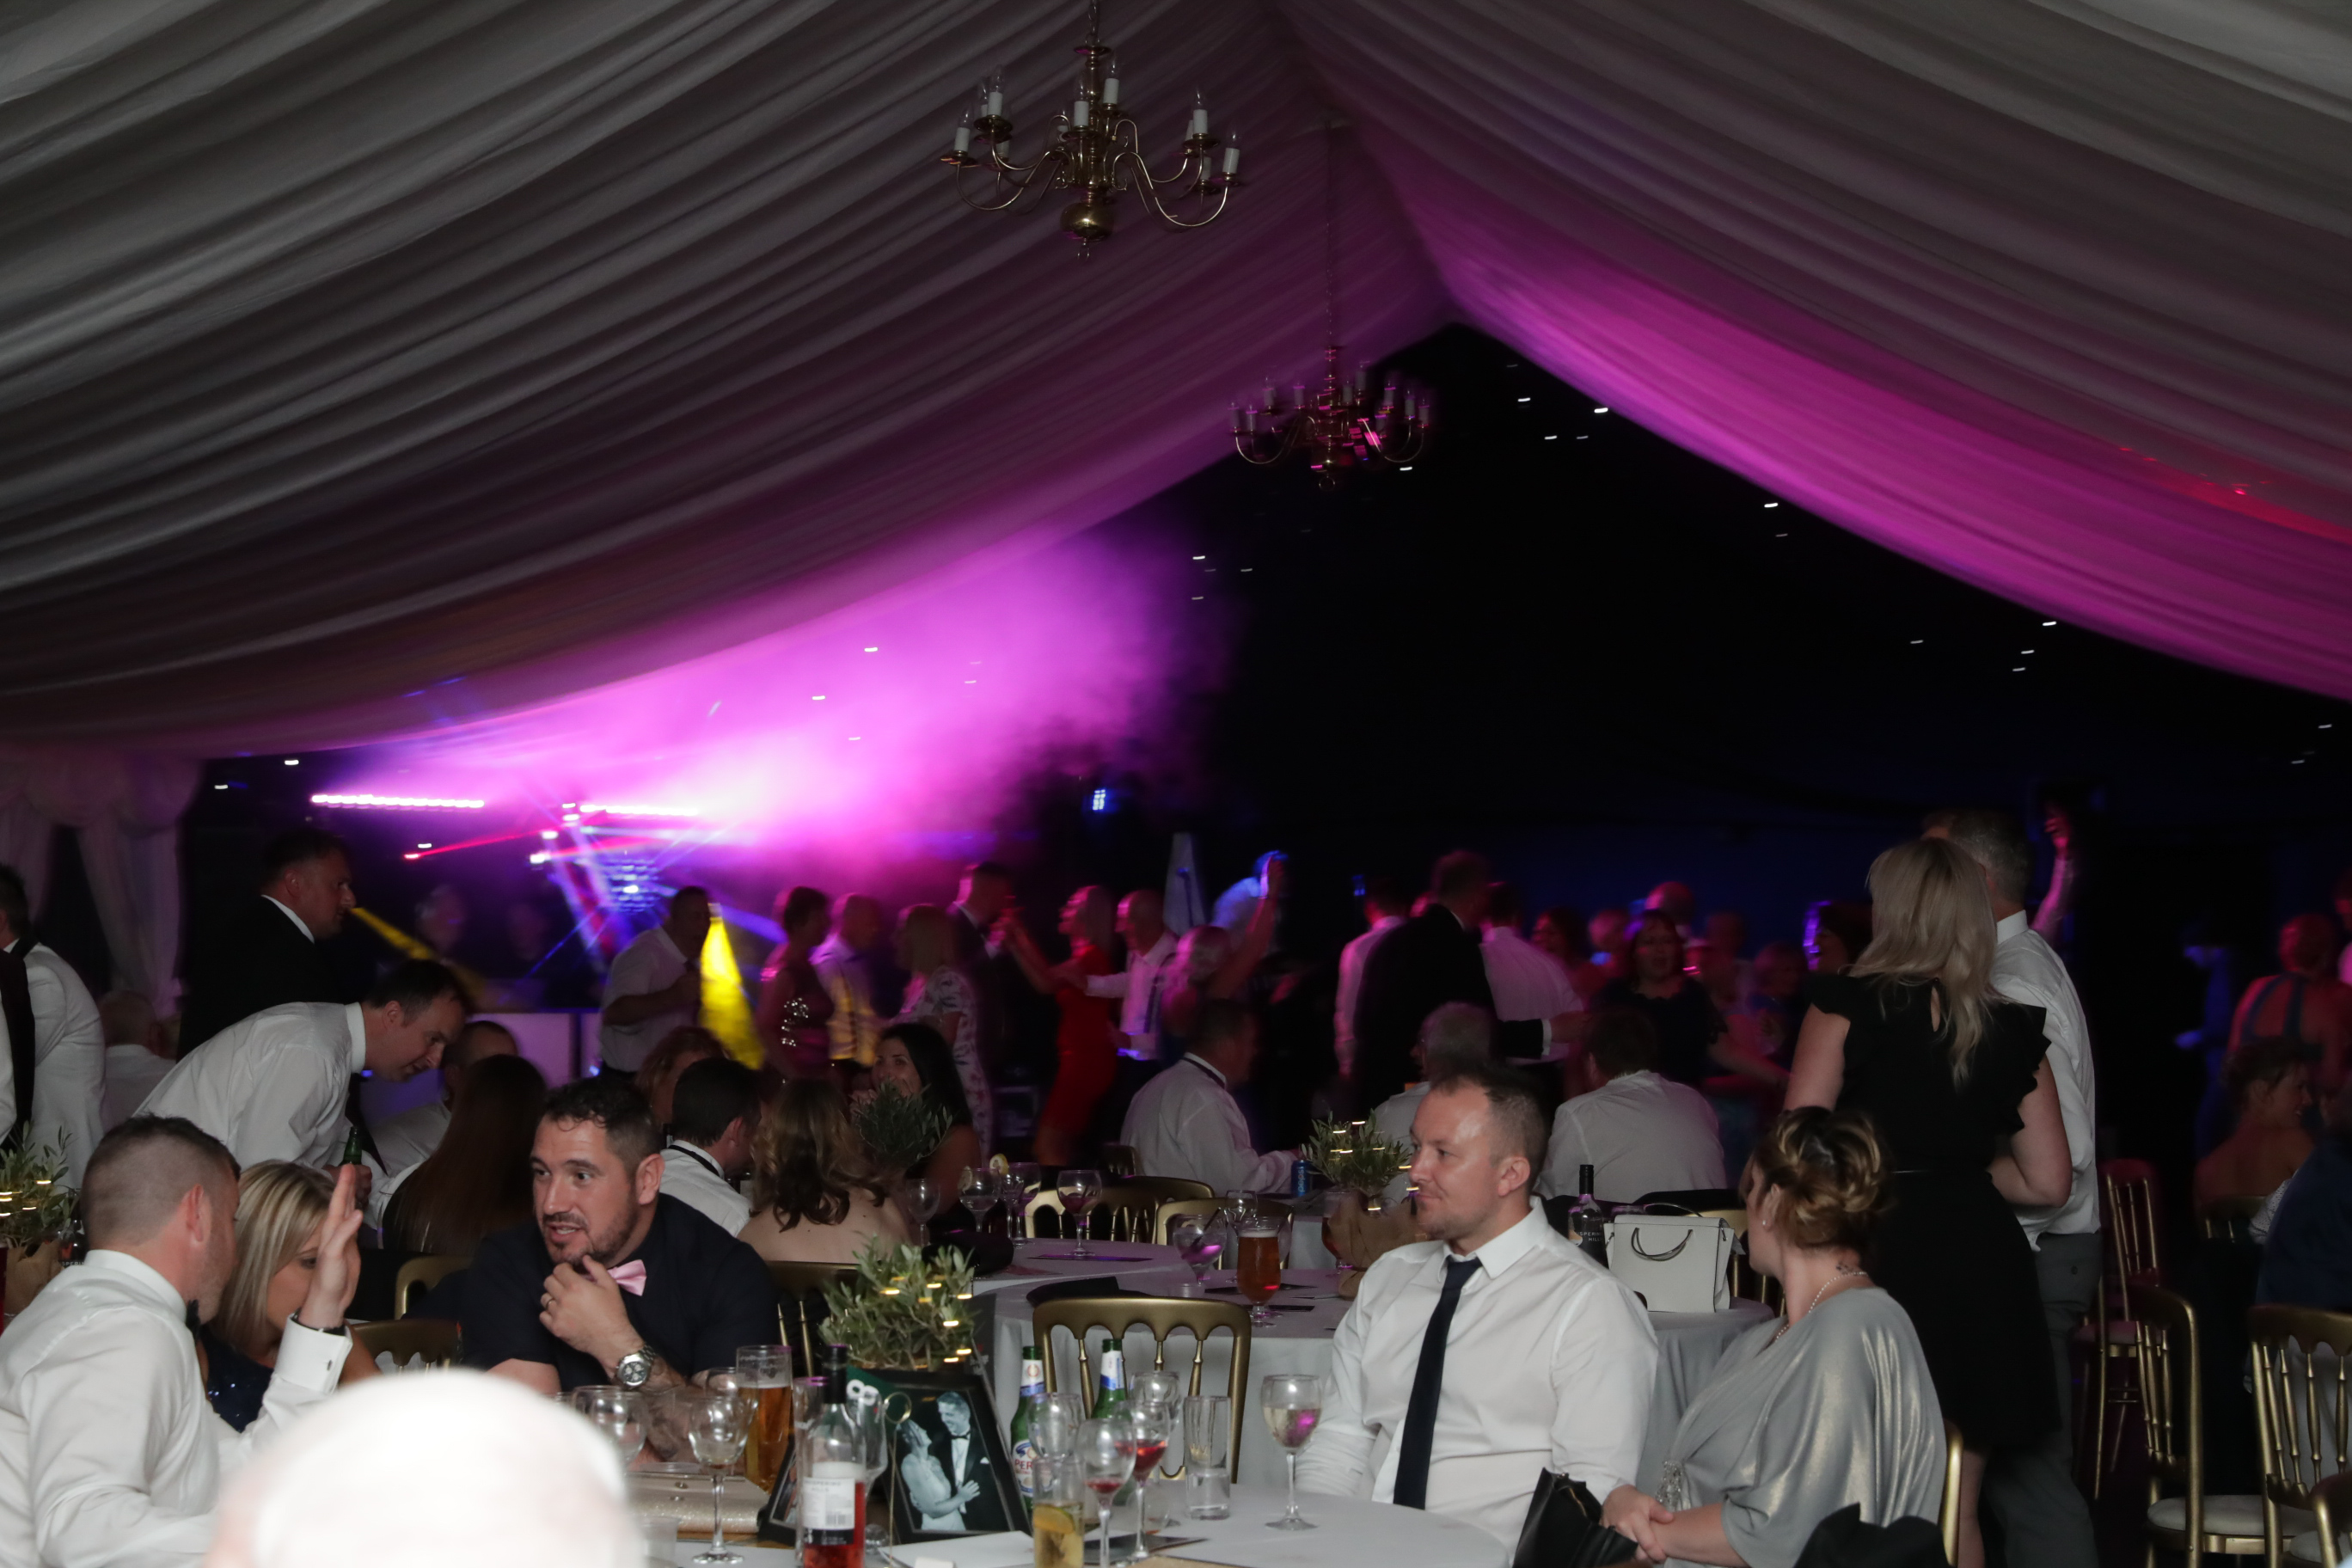 Burntwood Rugby Club's Summer Ball 2019